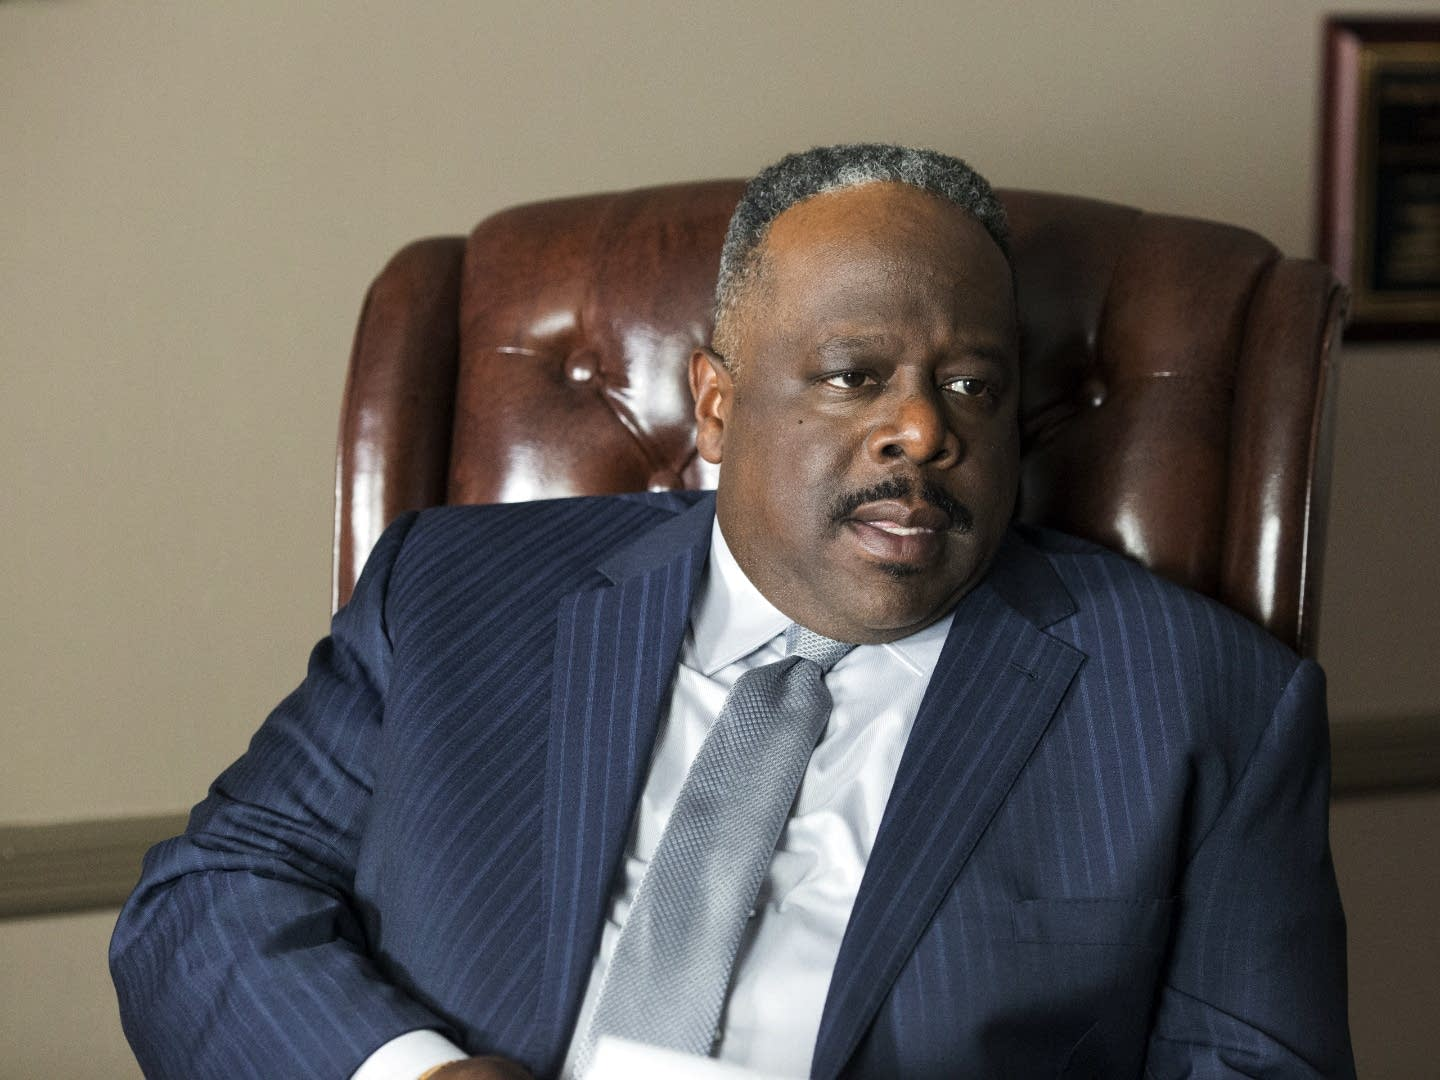 Cedric Kyle (better known as Cedric the Entertainer) as Pastor Jeffers.